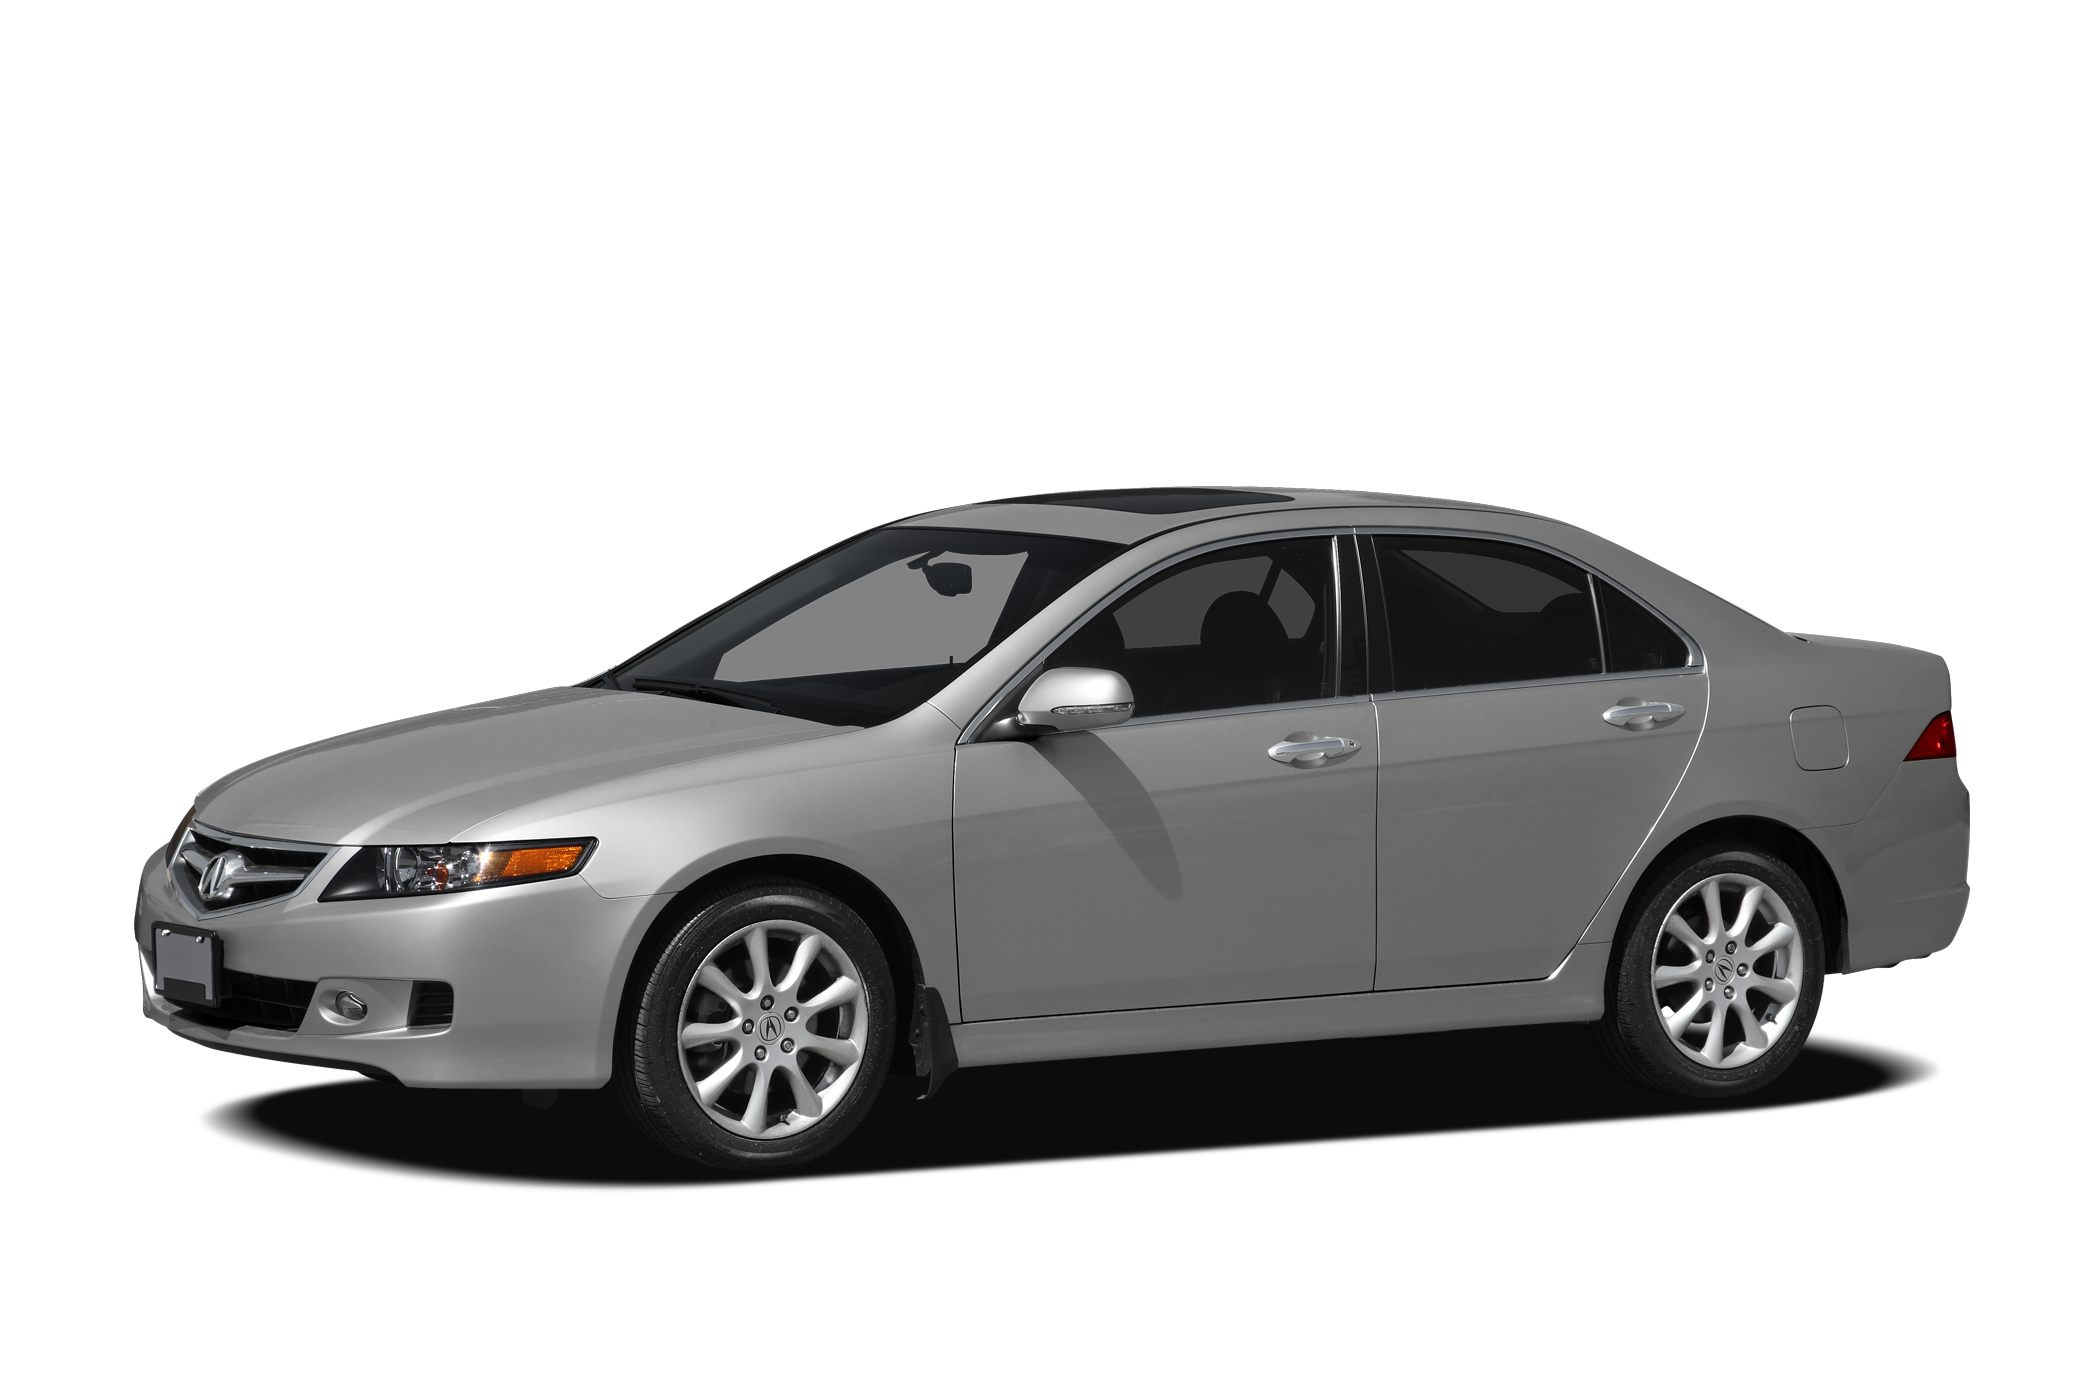 2007 Acura TSX Sedan for sale in Kinston for $11,500 with 131,111 miles